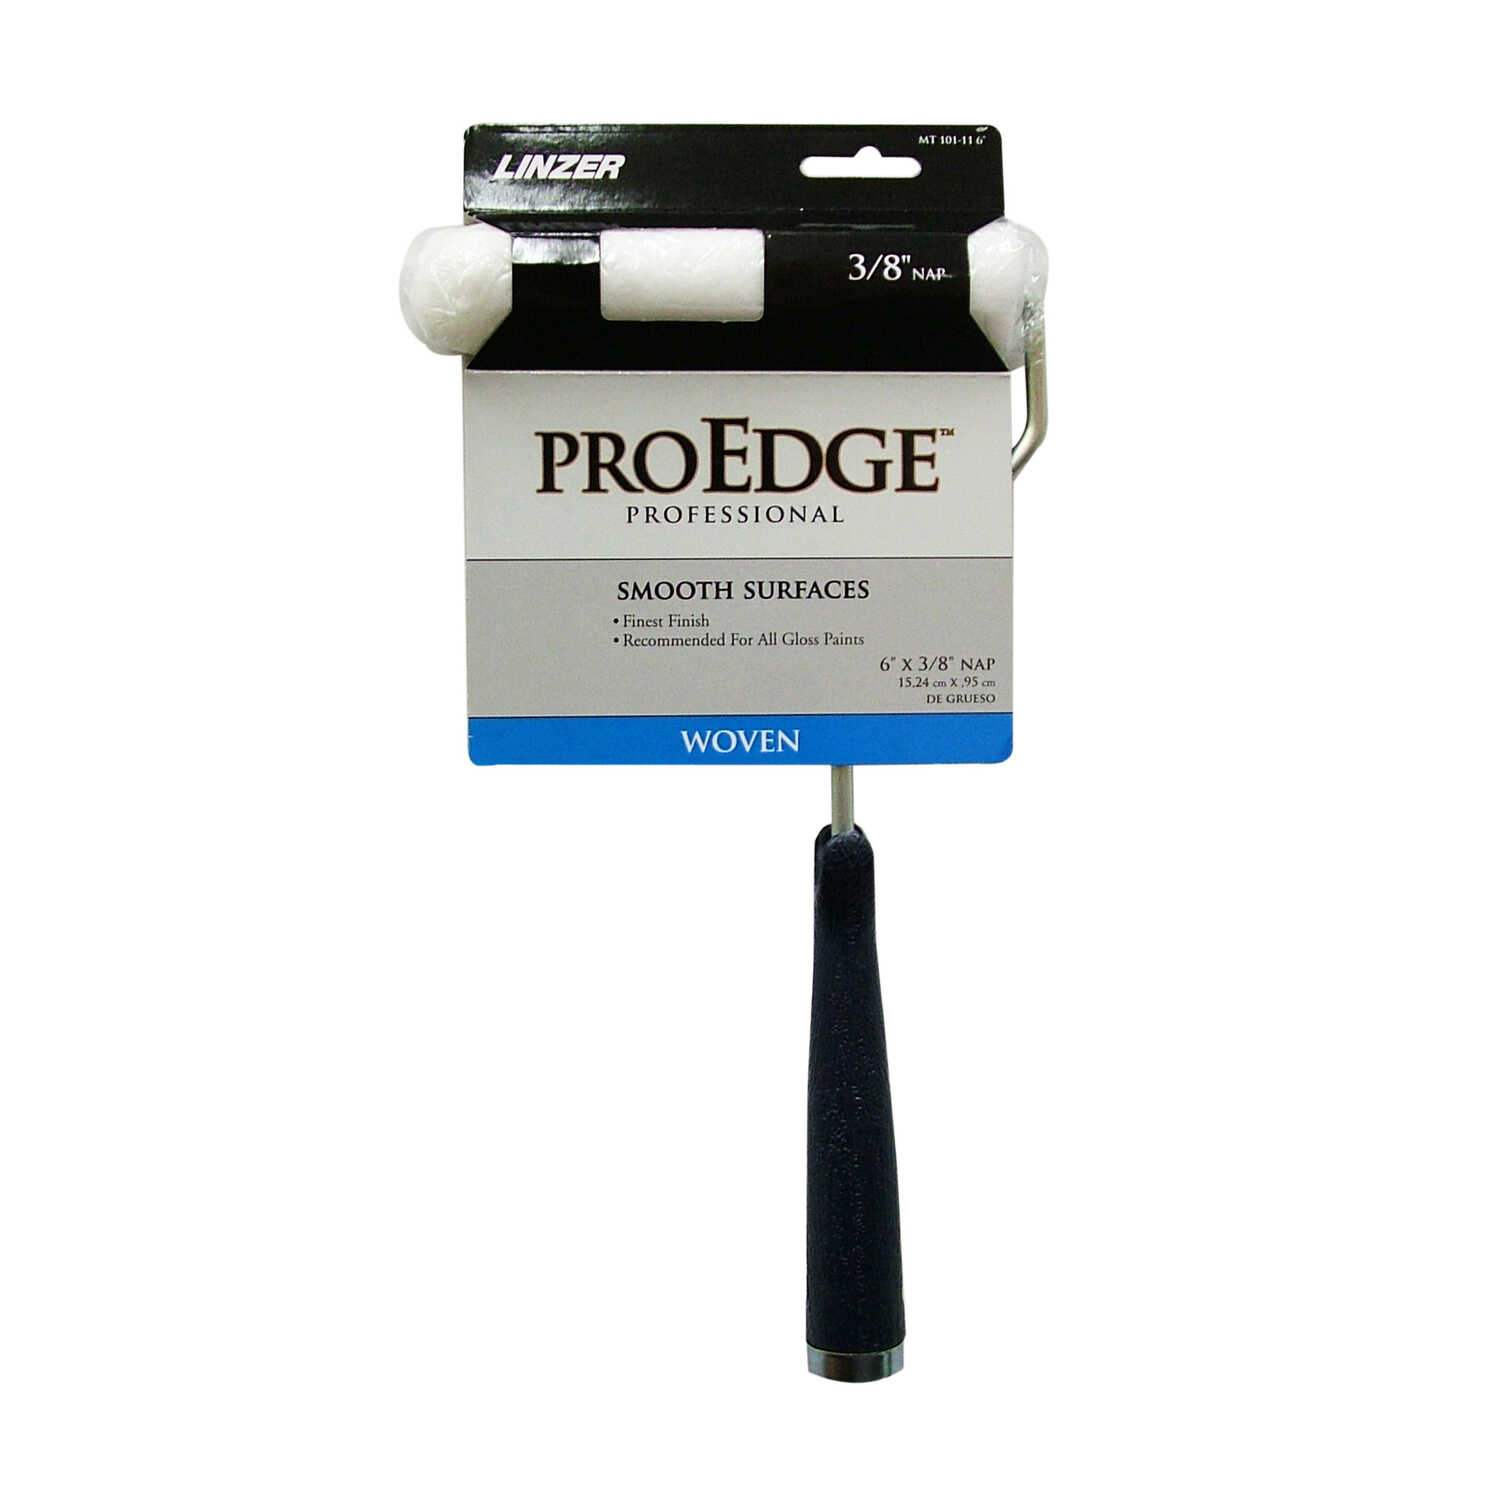 Linzer  Pro Edge  Threaded End 6 in. W Metal/Plastic  Mini  Paint Roller Frame and Cover